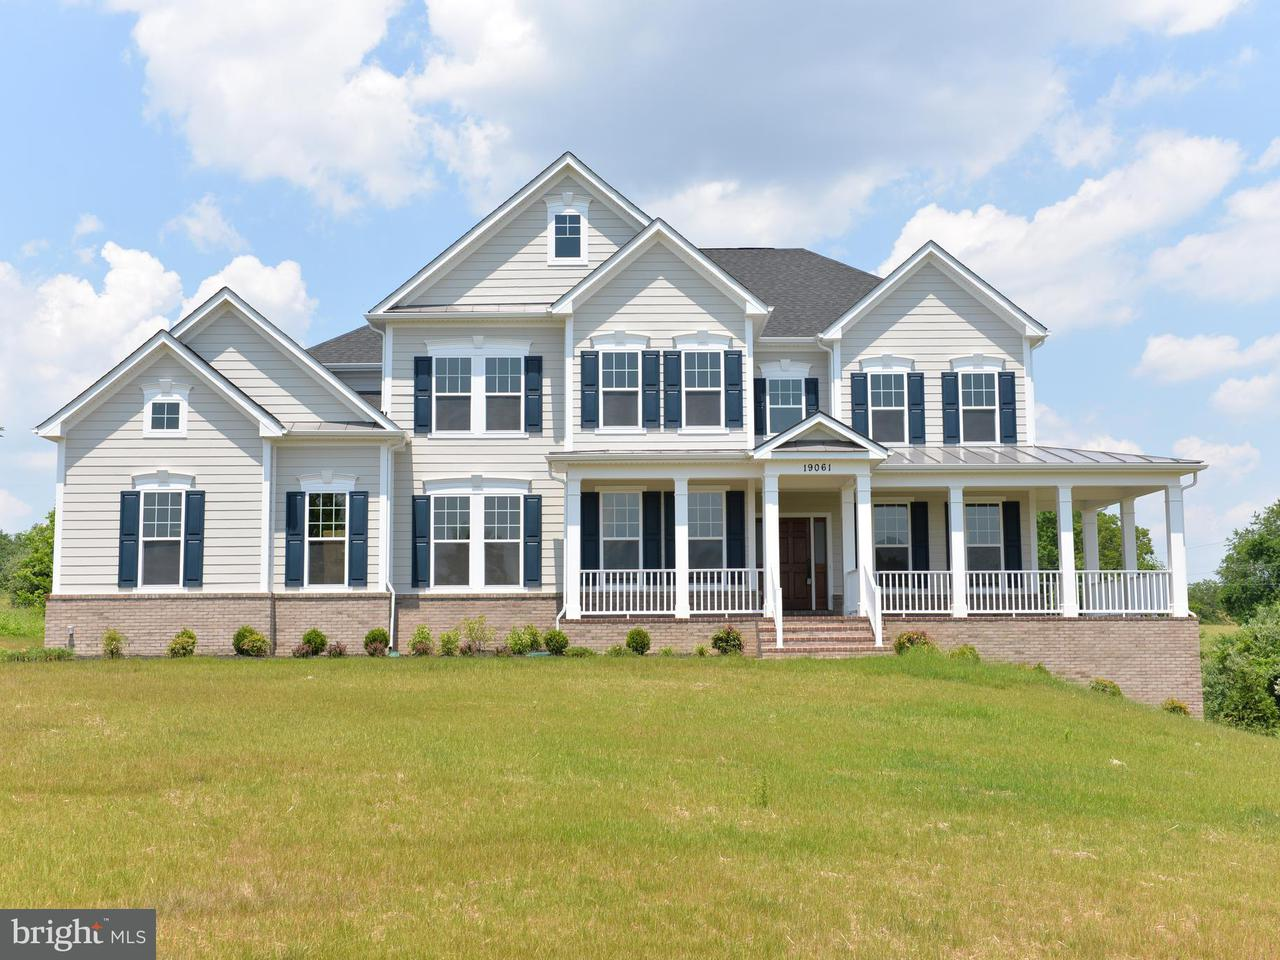 Single Family Home for Sale at 36465 Leith Lane 36465 Leith Lane Middleburg, Virginia 20117 United States